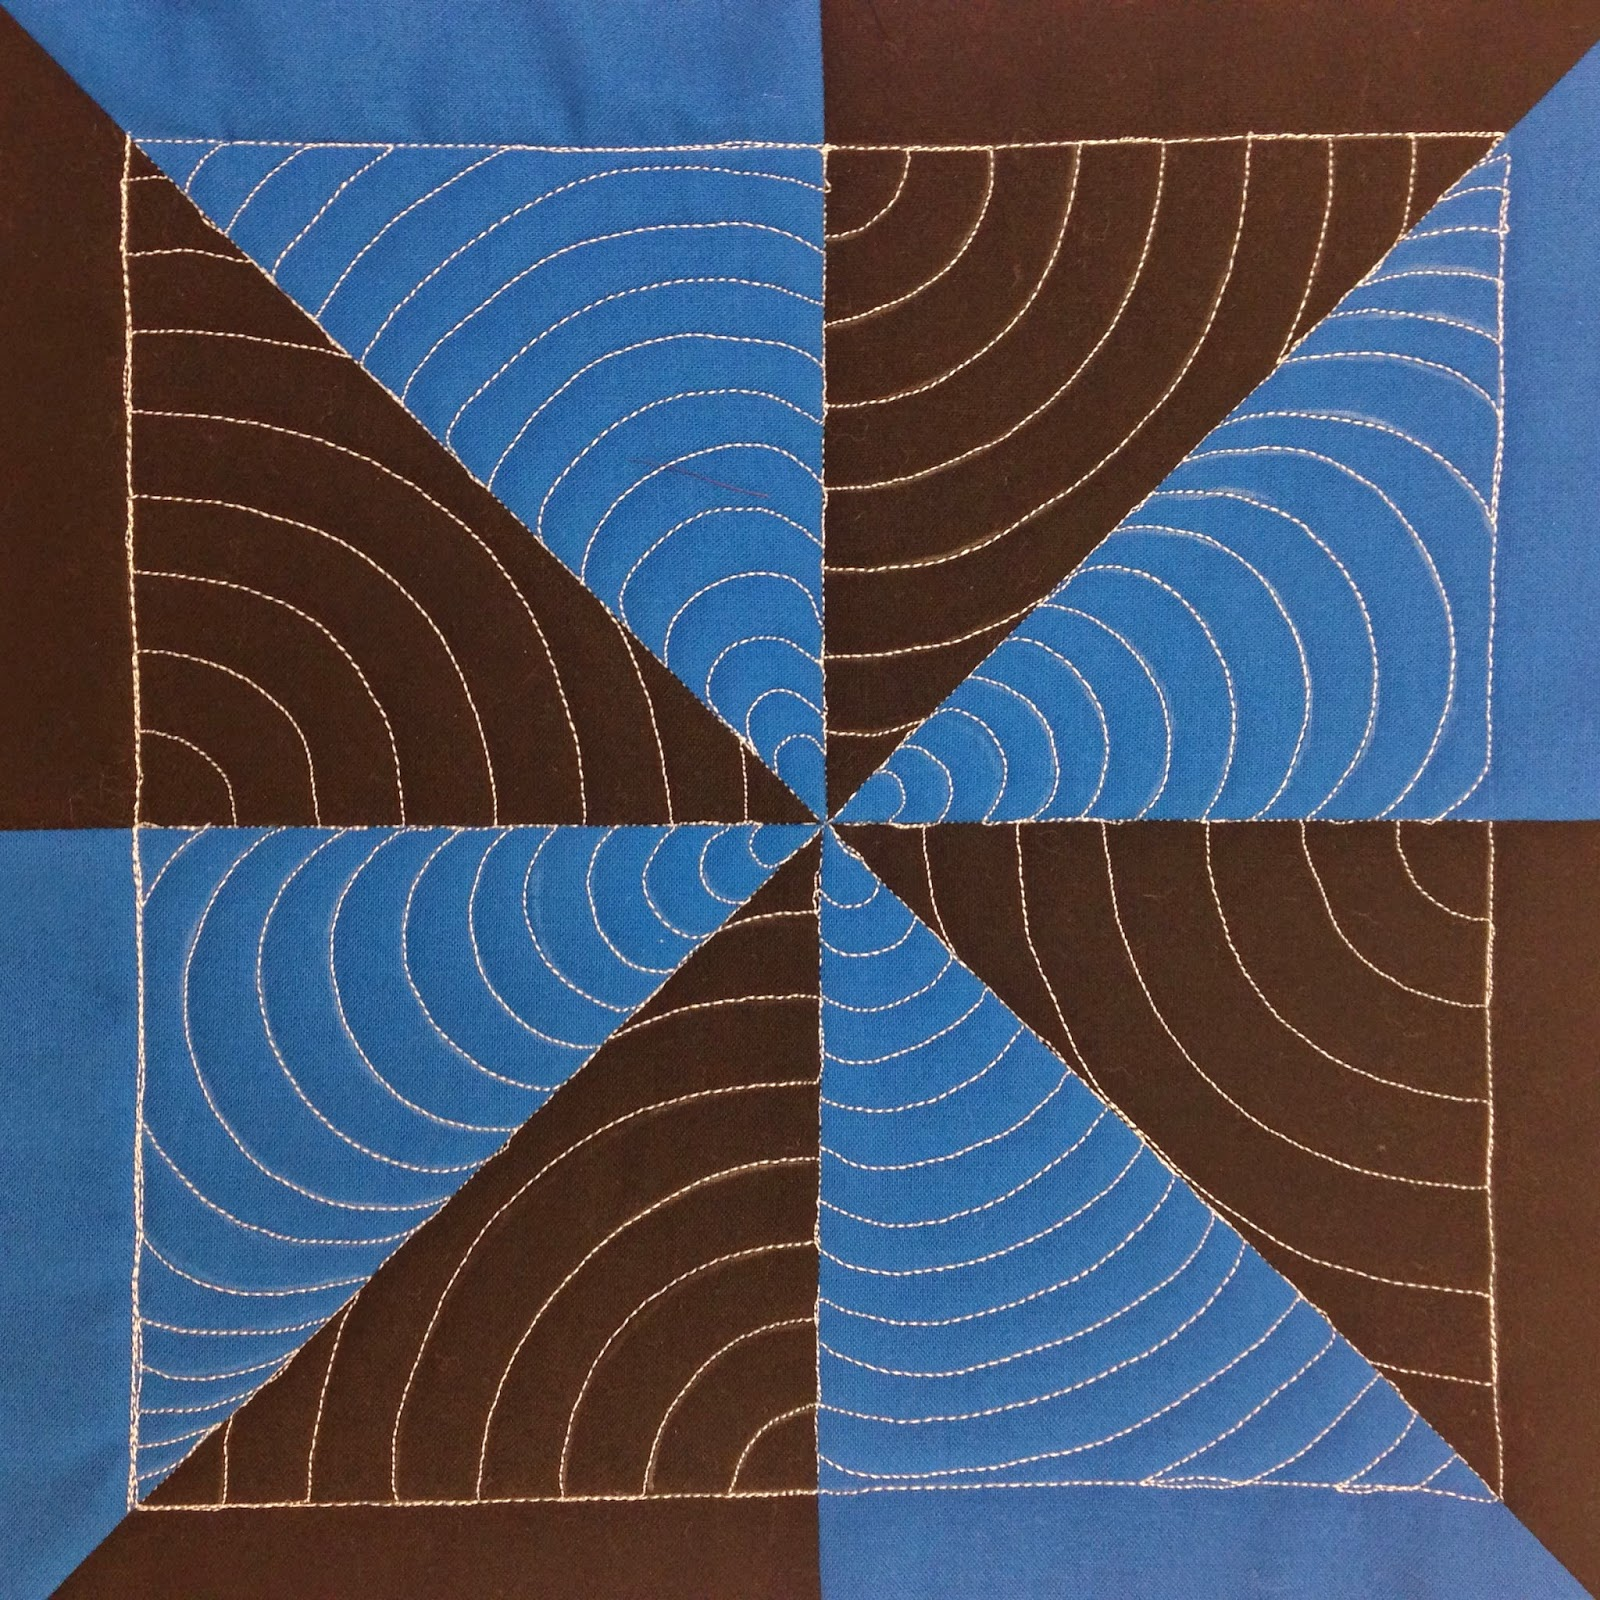 Free Motion Quilting Patterns For Blocks : The Free Motion Quilting Project: 26. Quilt Echo Shell in a Pinwheel Block